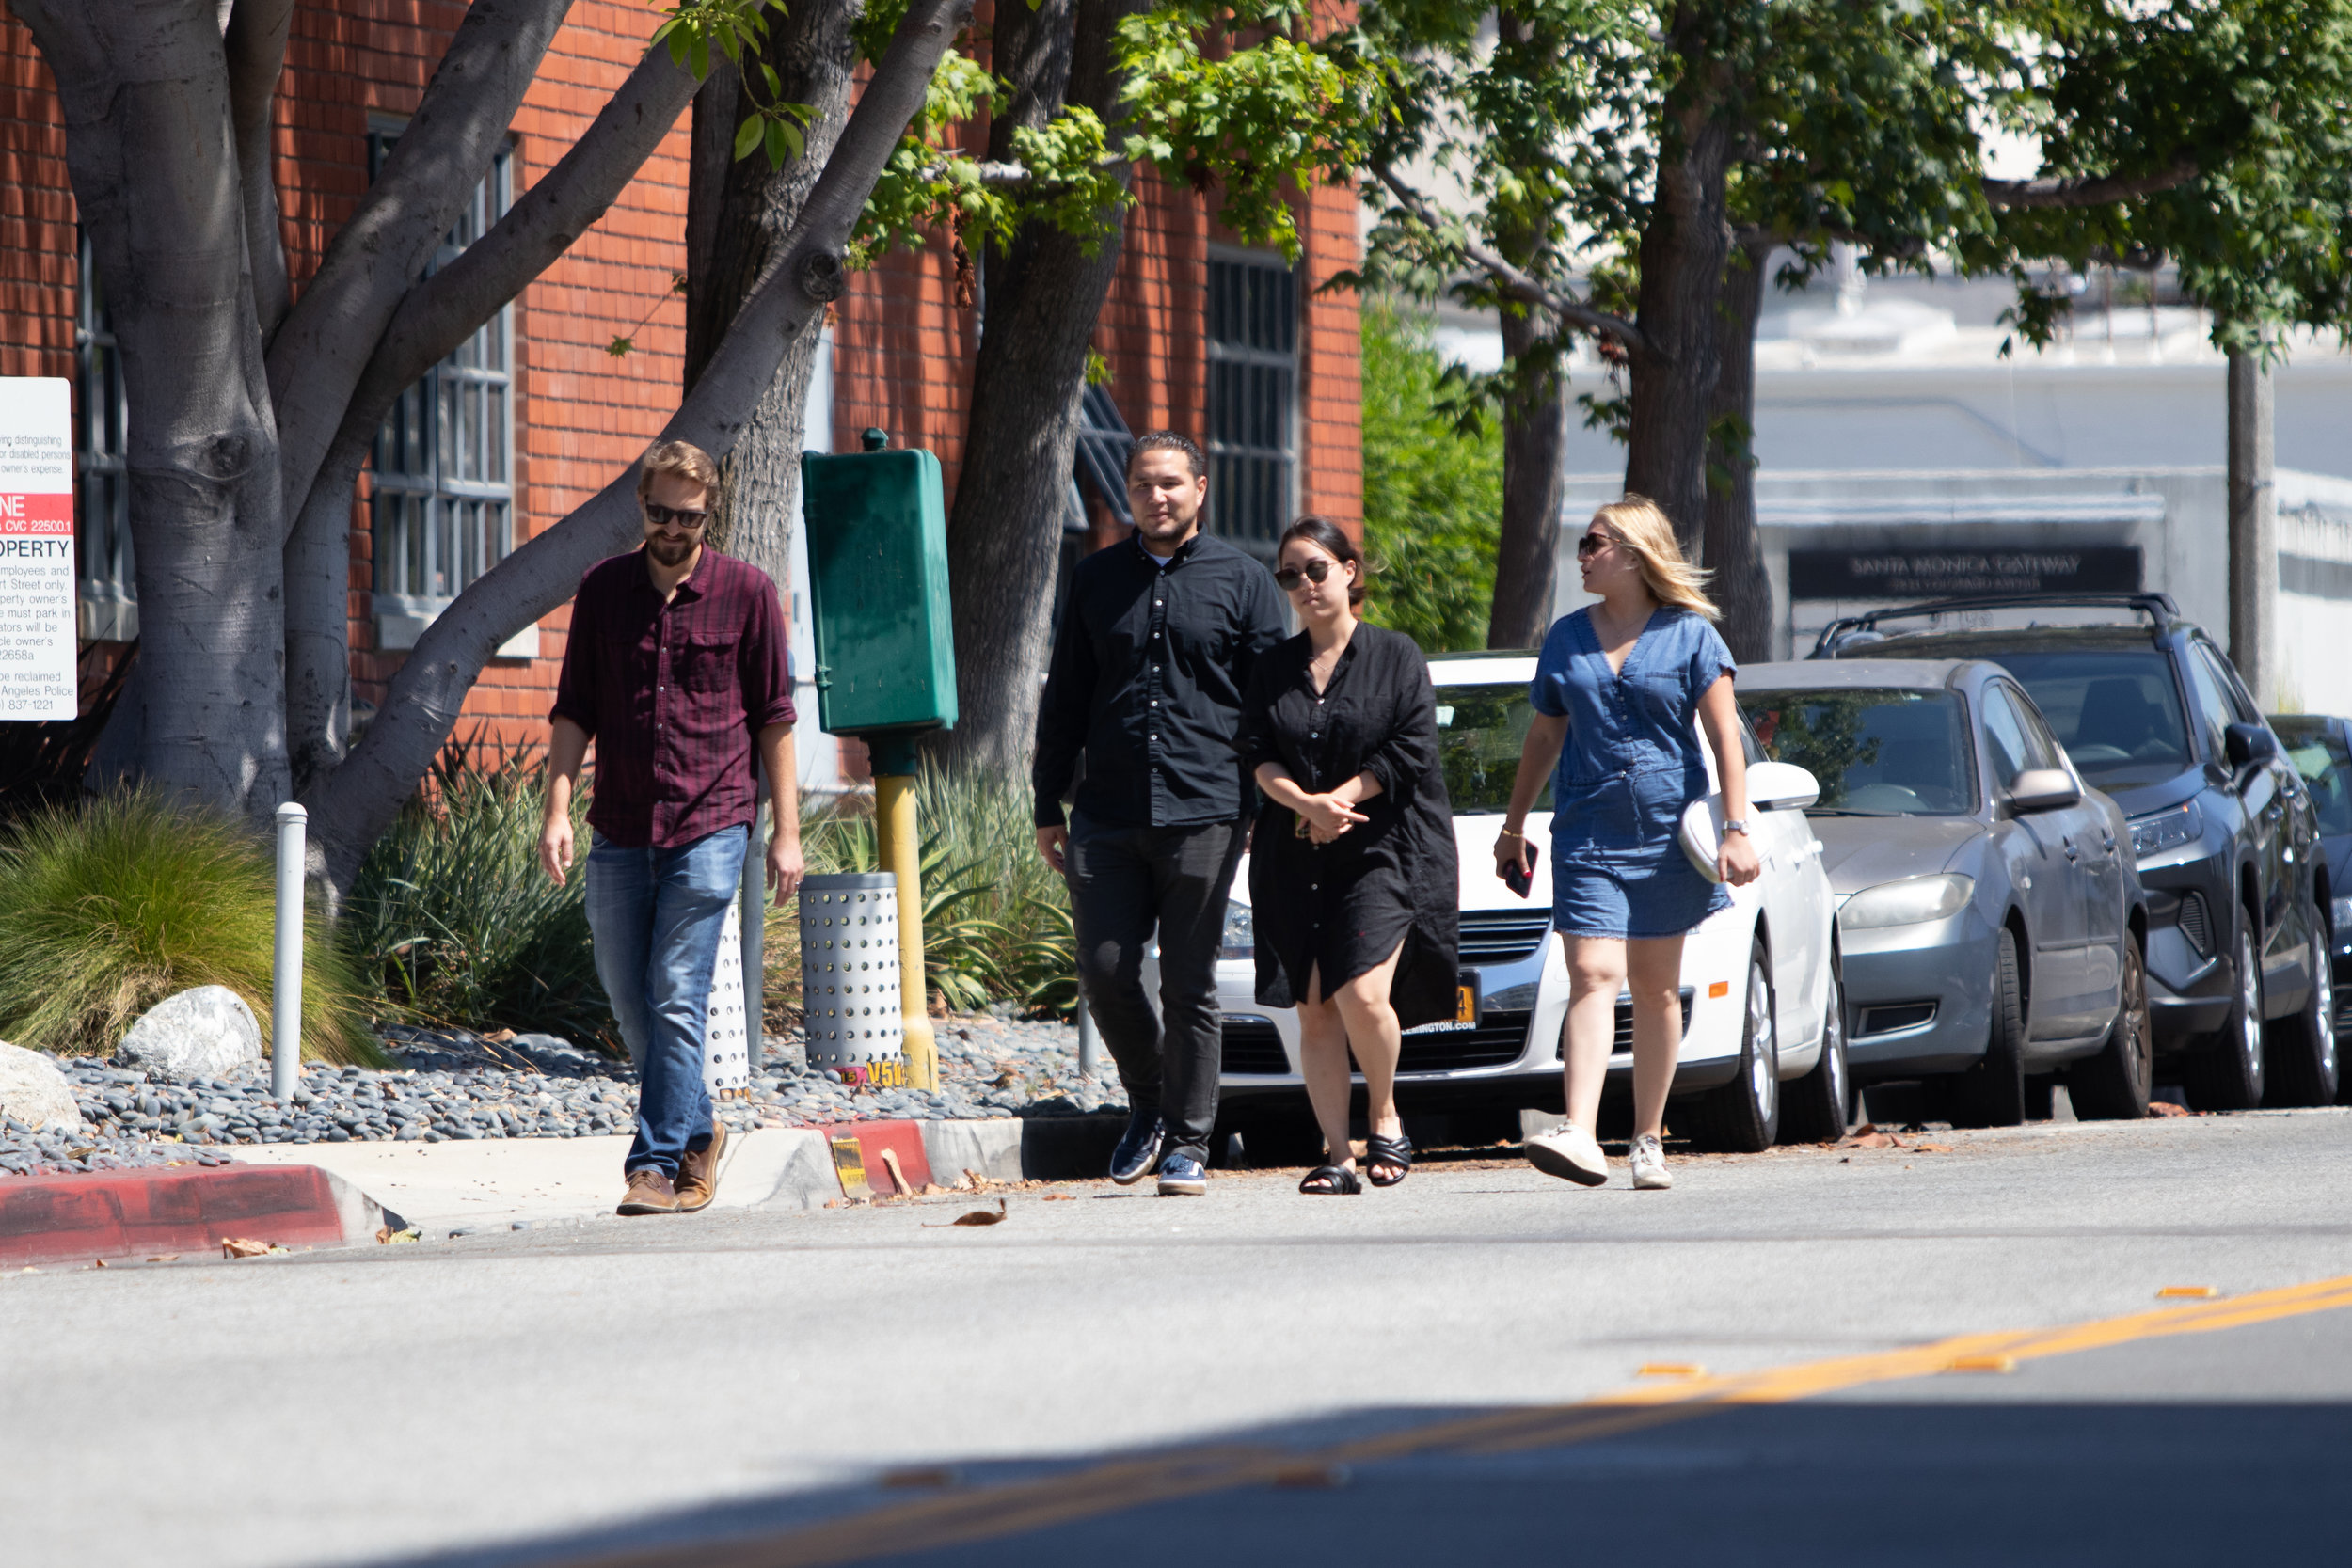 A group of four walking in a car lane on their way to get food from food trucks in Santa Monica, California on September 5th, 2019. (Fernando Duran/The Corsair)